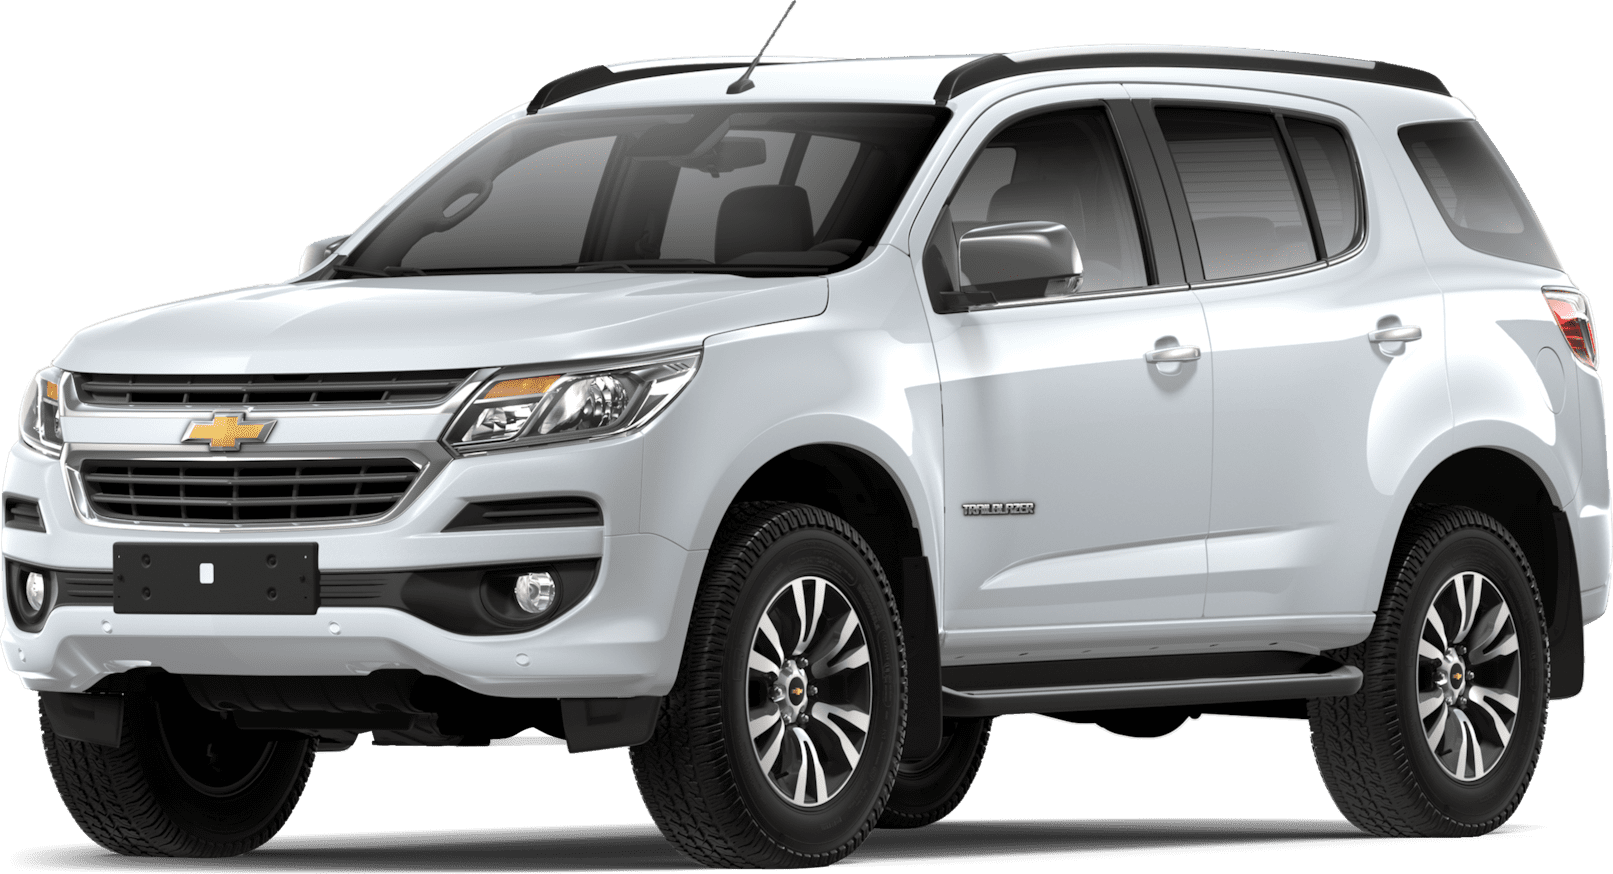 2019 Chevrolet Trailblazer LTZ 4WD Price in UAE, Specs ...